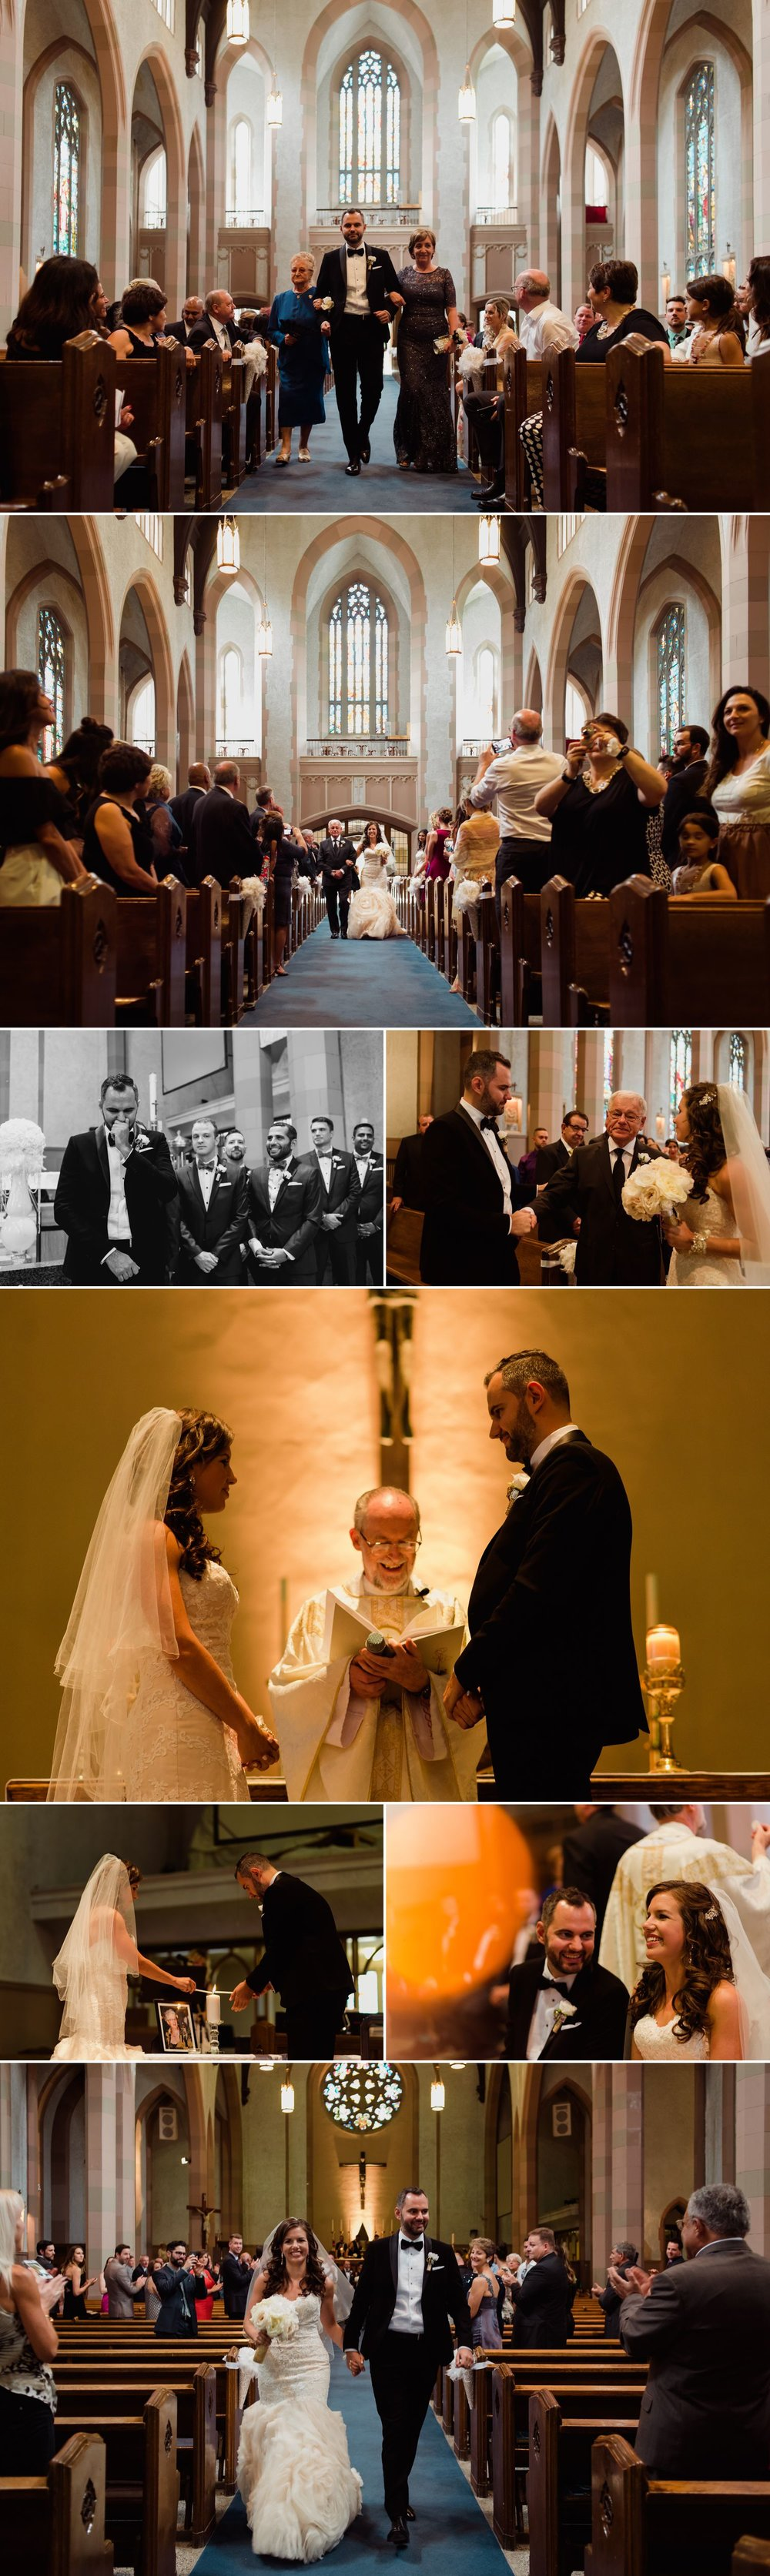 Wedding ceremony at the Blessed Sacrament church in Ottawa